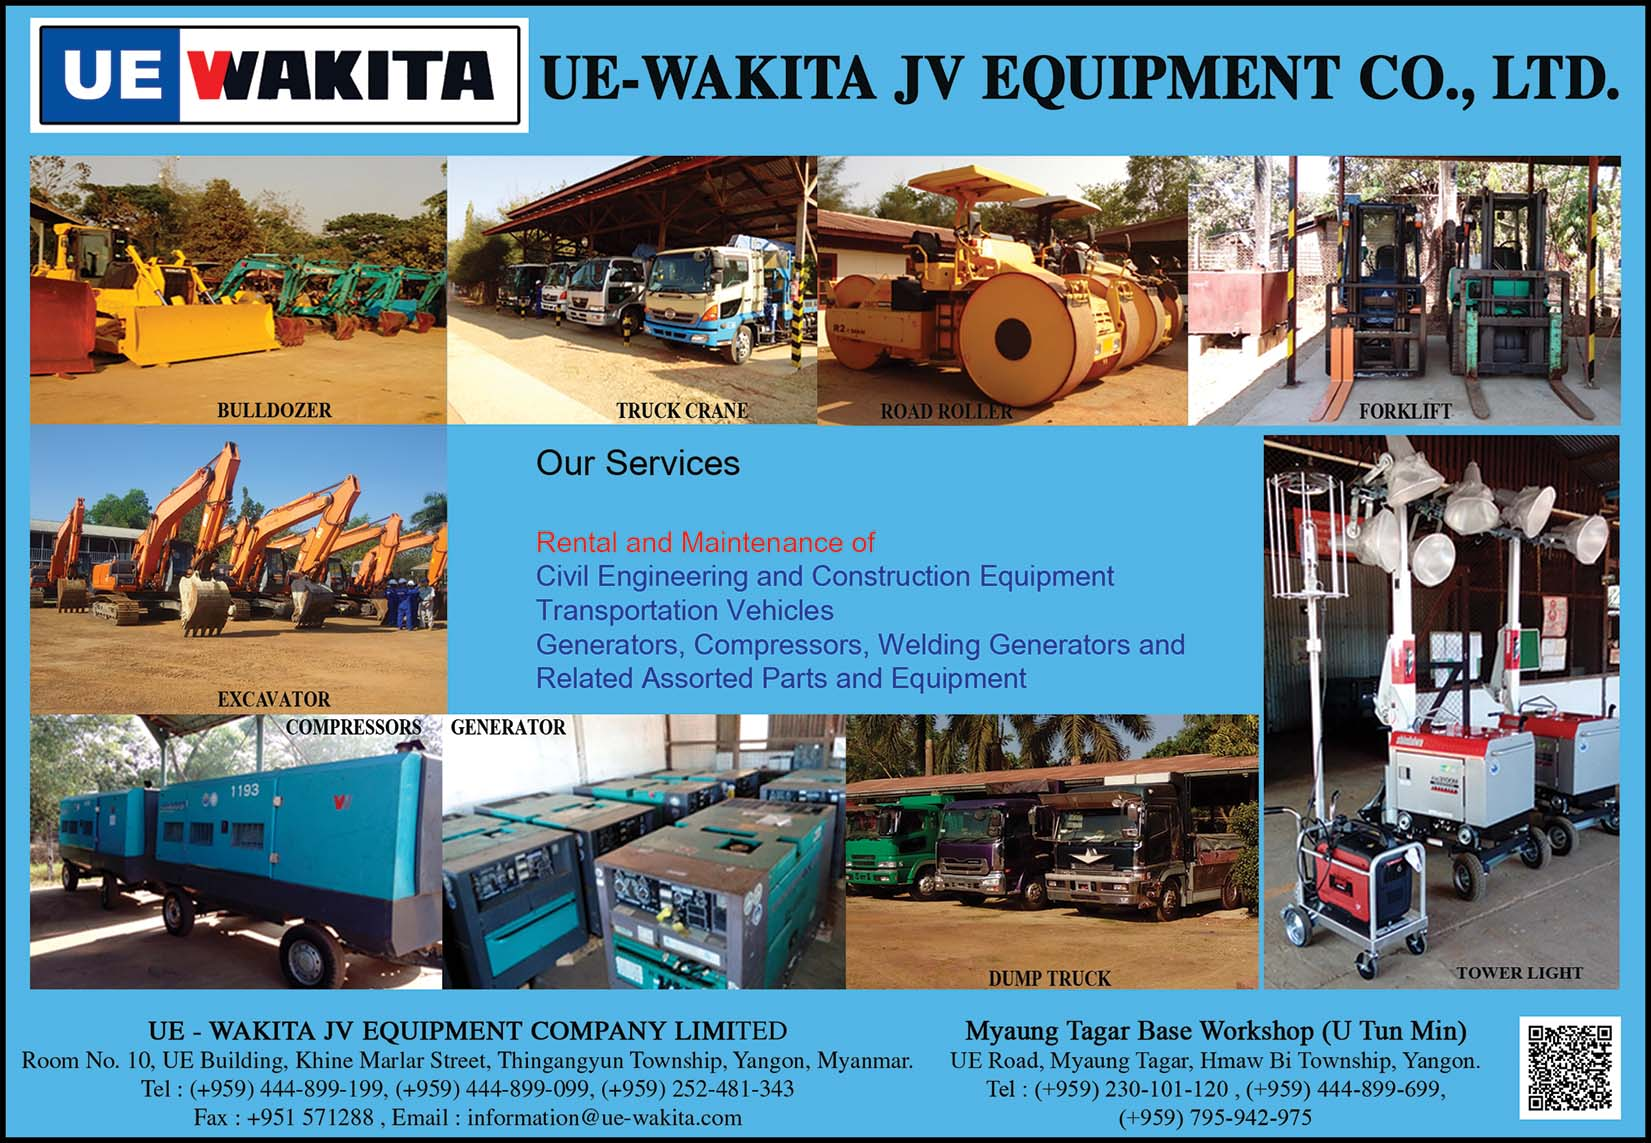 UE-WAKITA JV Equipment Co., Ltd.